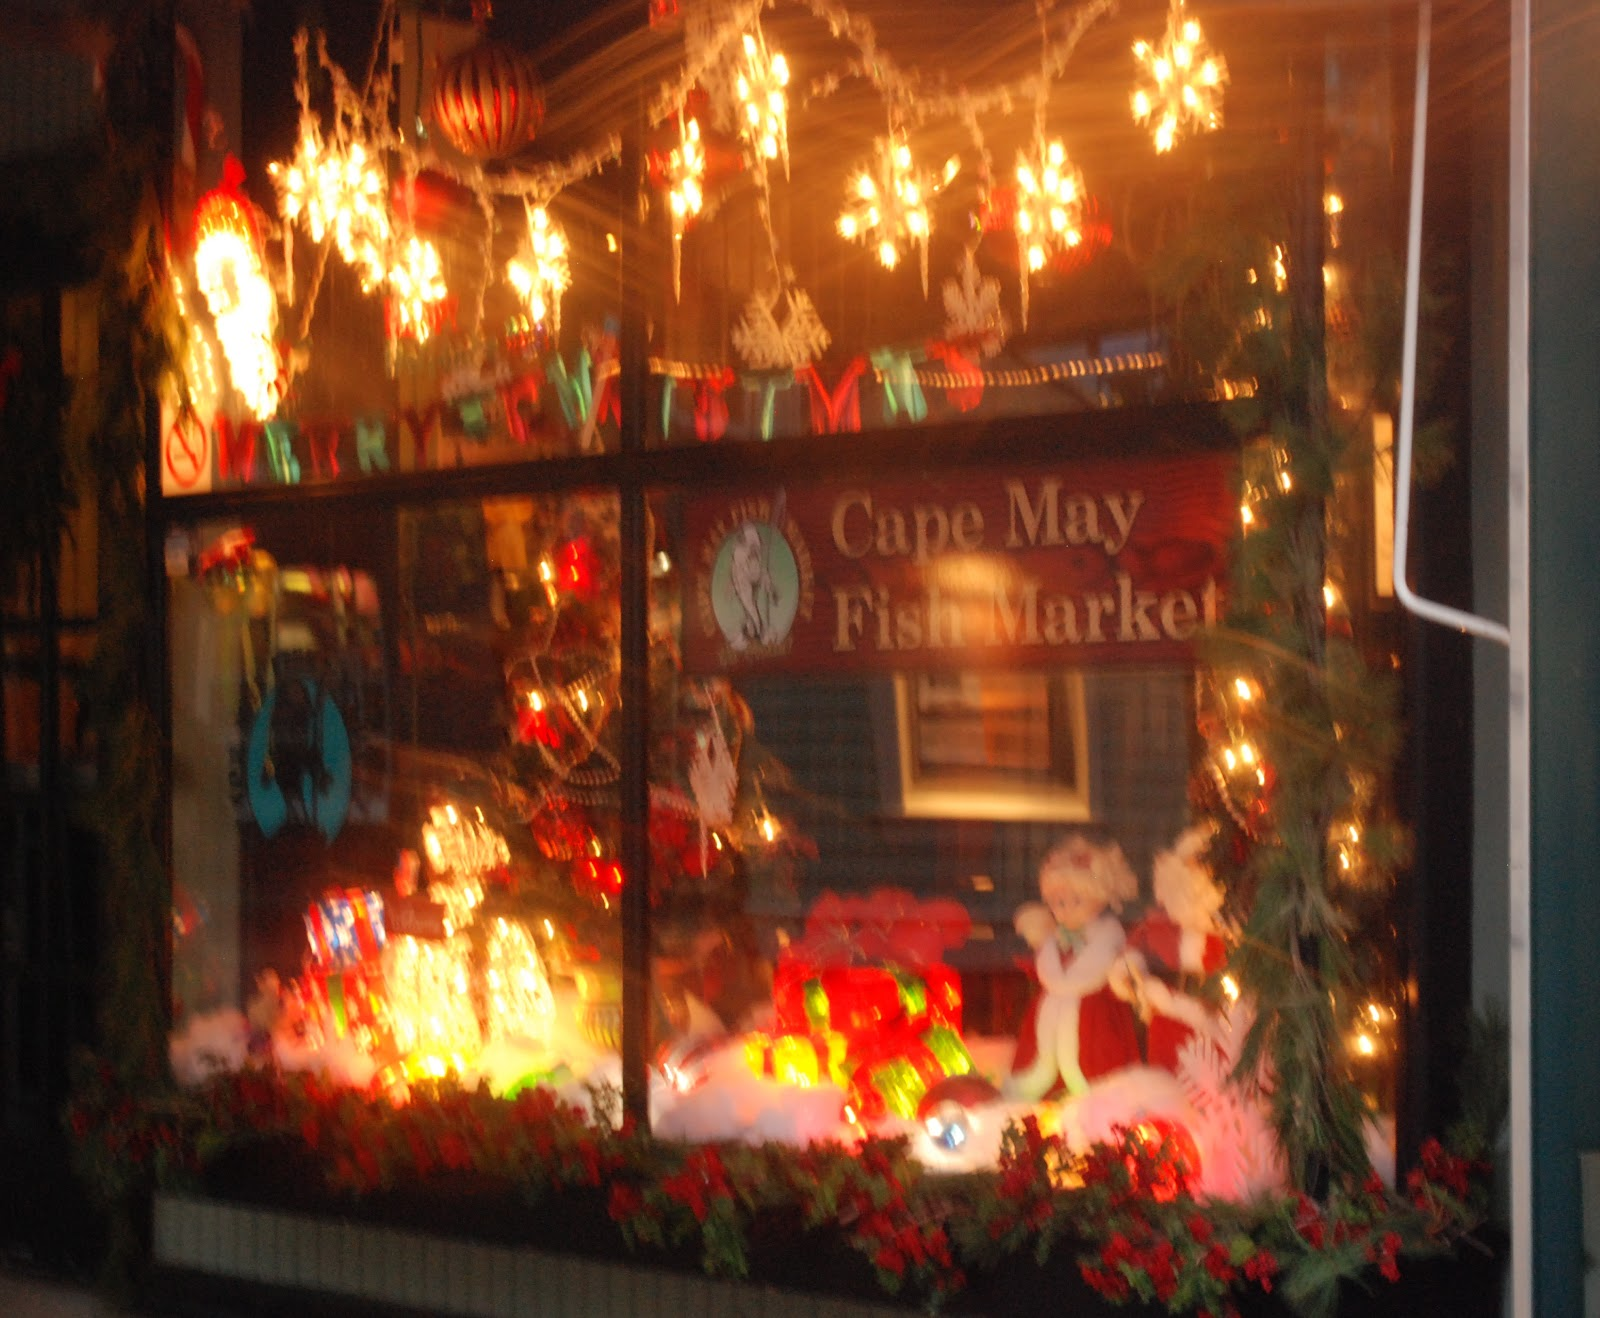 Margaret Montet: Christmas Eve in Cape May